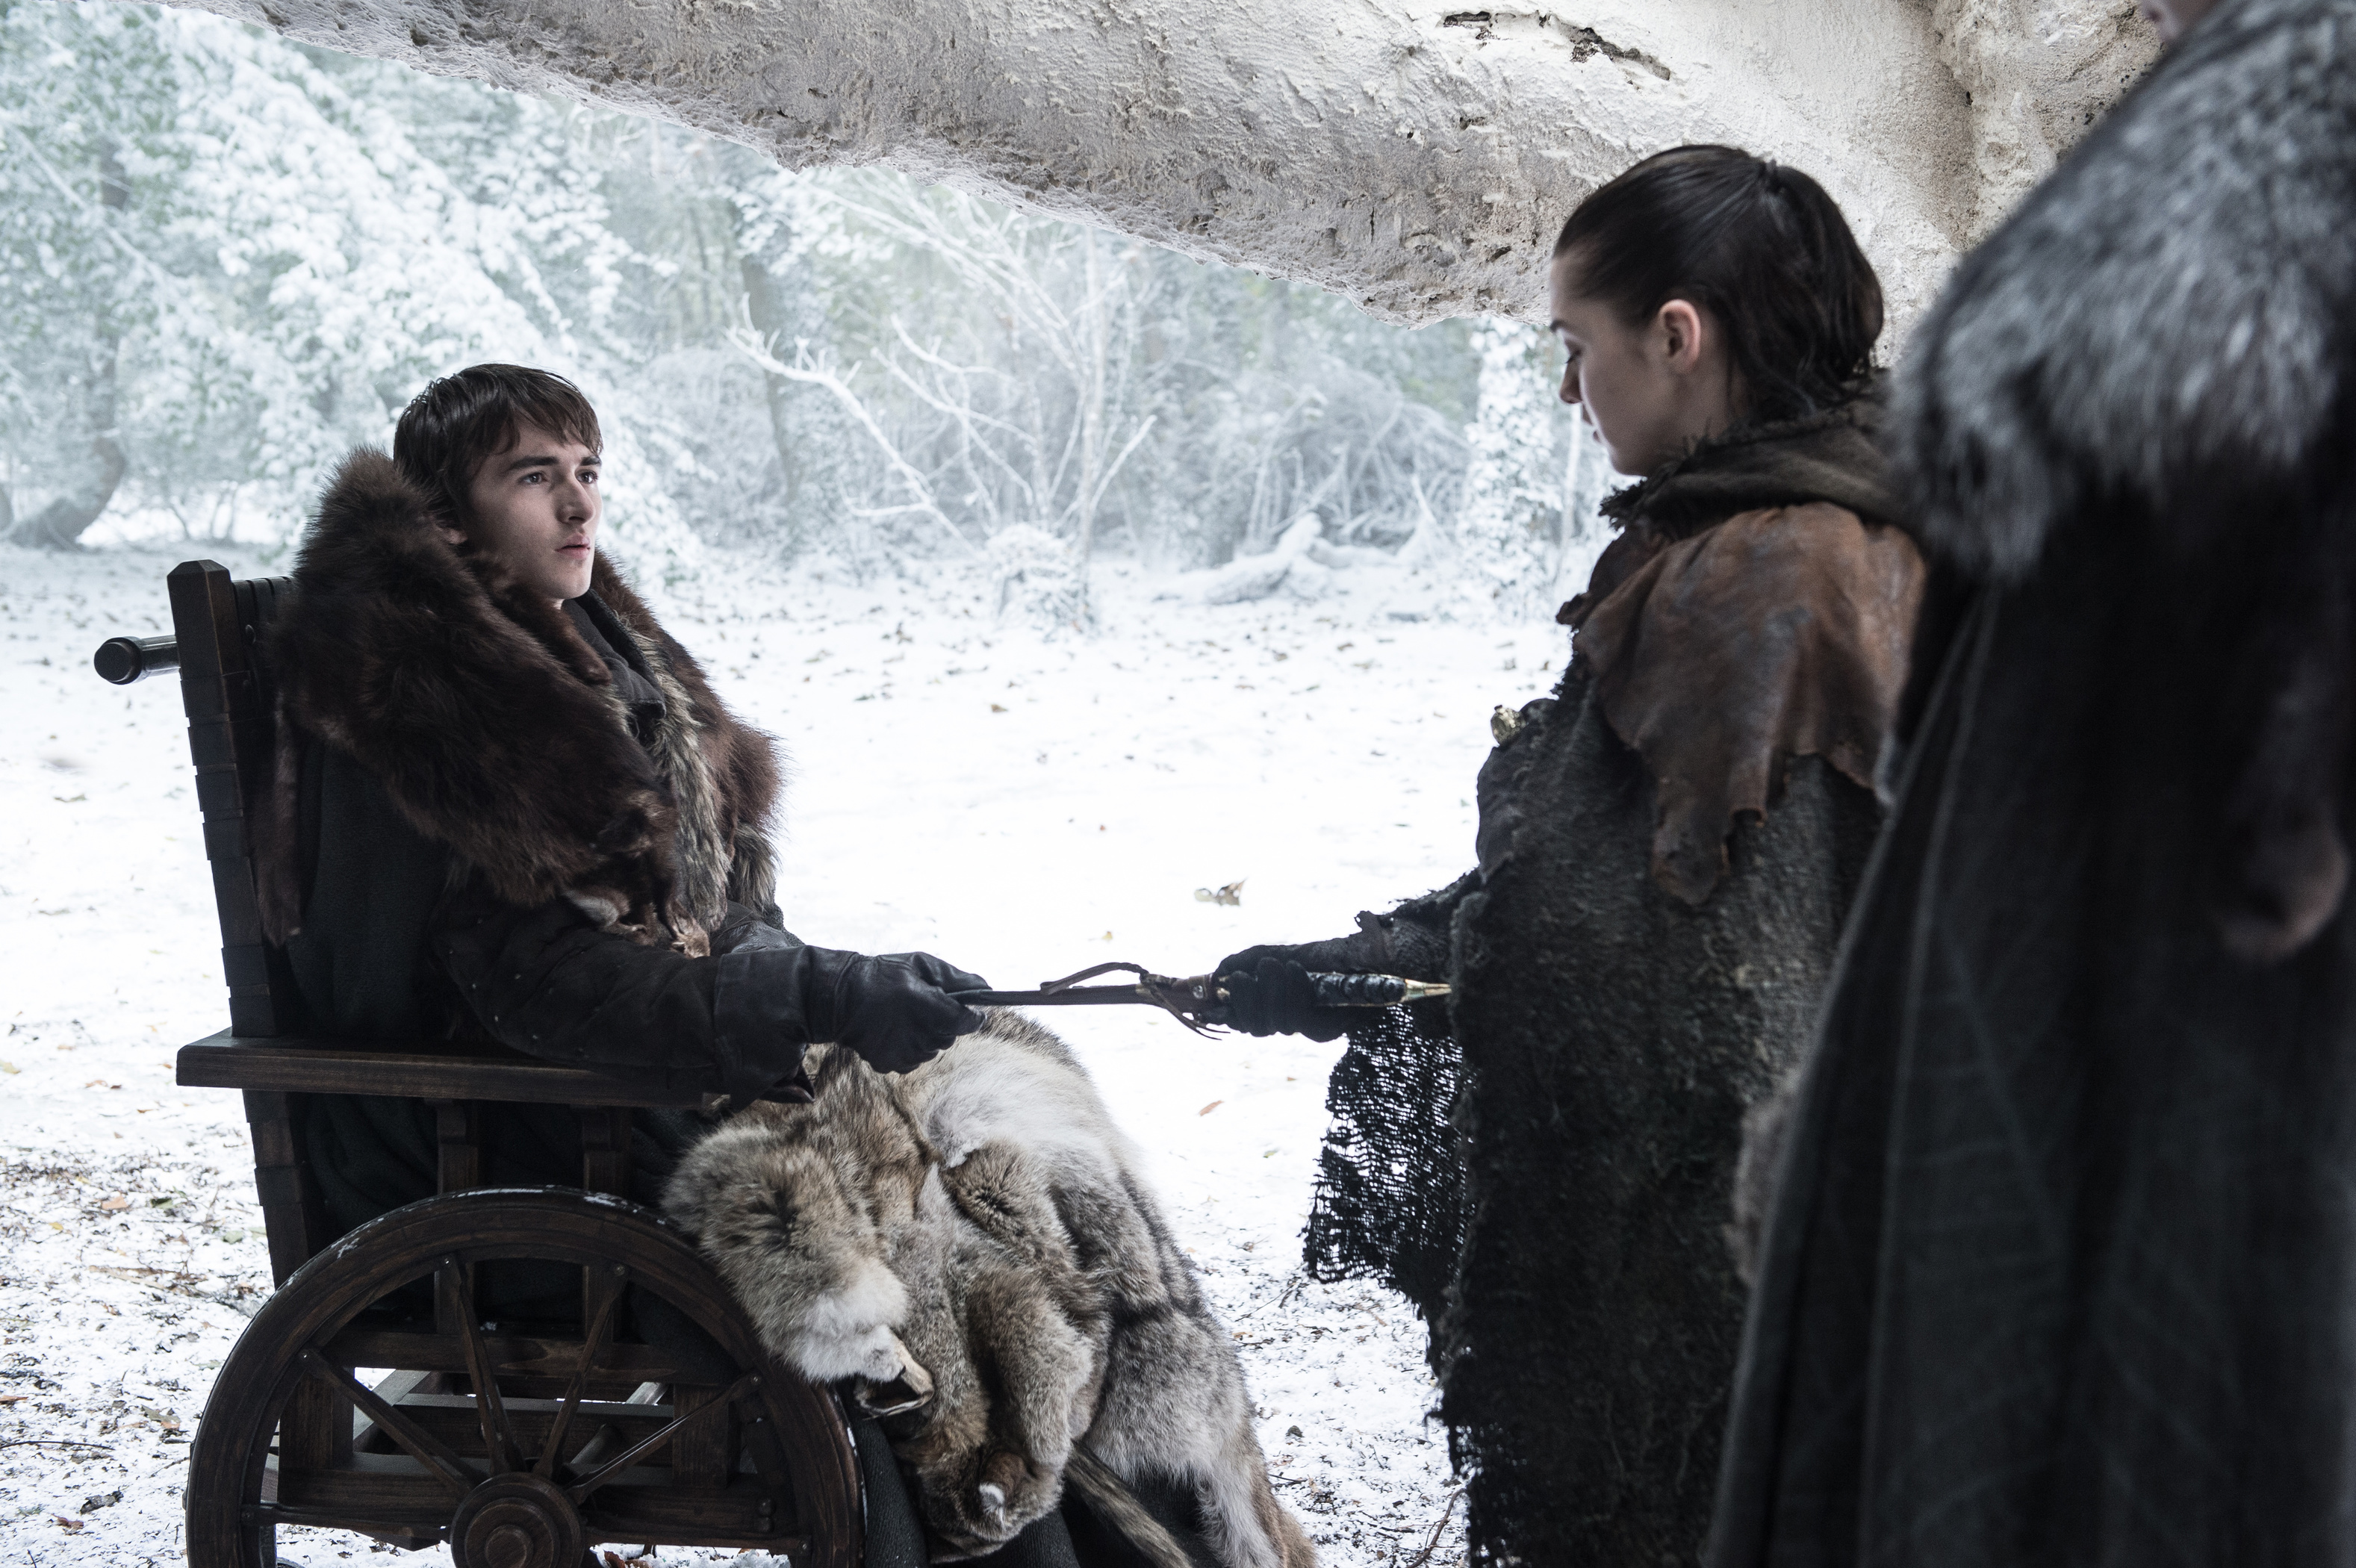 Isaac Hempstead Wright and Maisie Williams in Game of Thrones